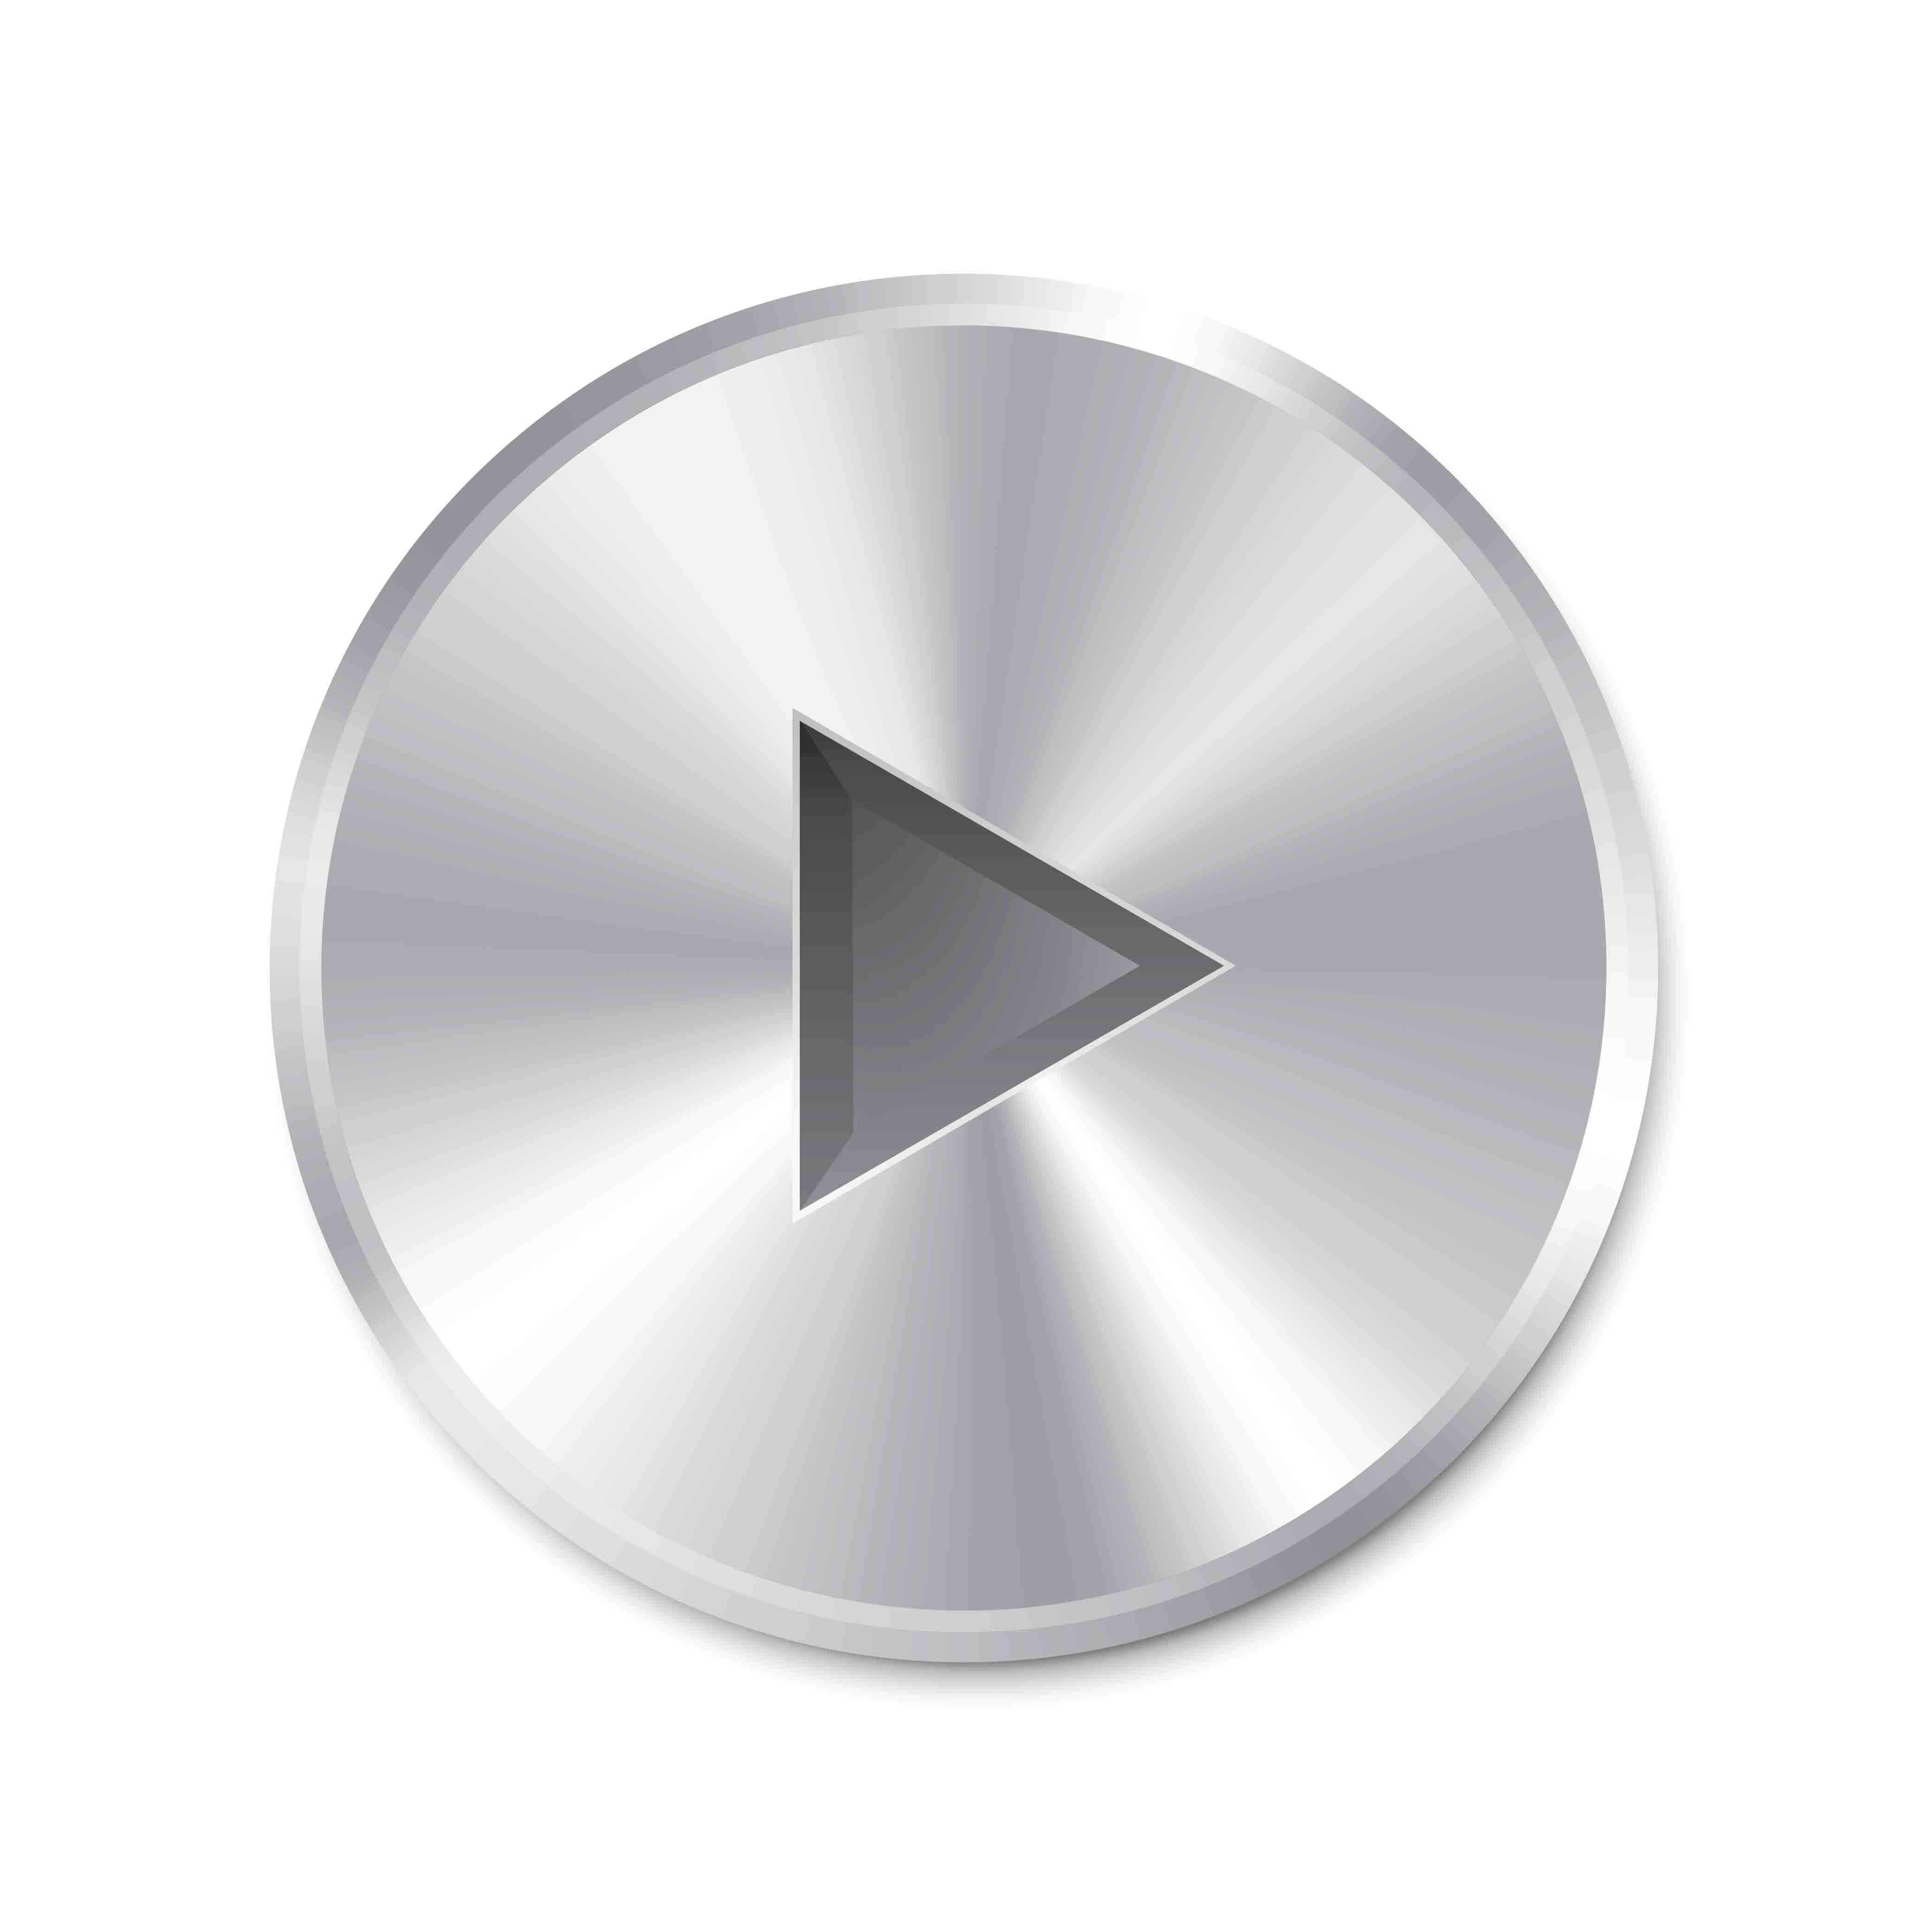 Realistic metallic Play Button (round). Isolated on white background. Illustration.